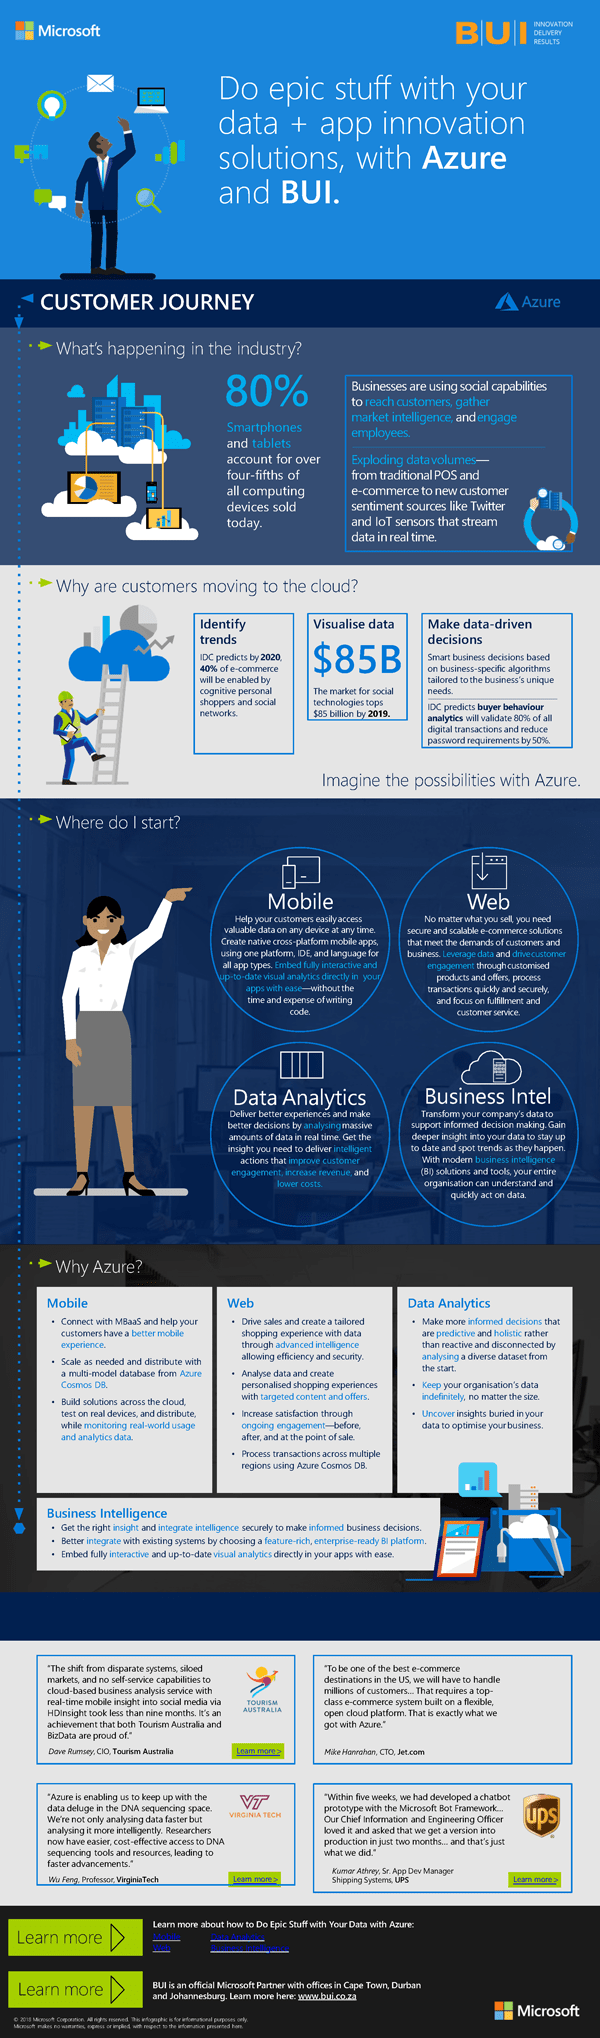 Infographic on data-driven decision making with cloud technology